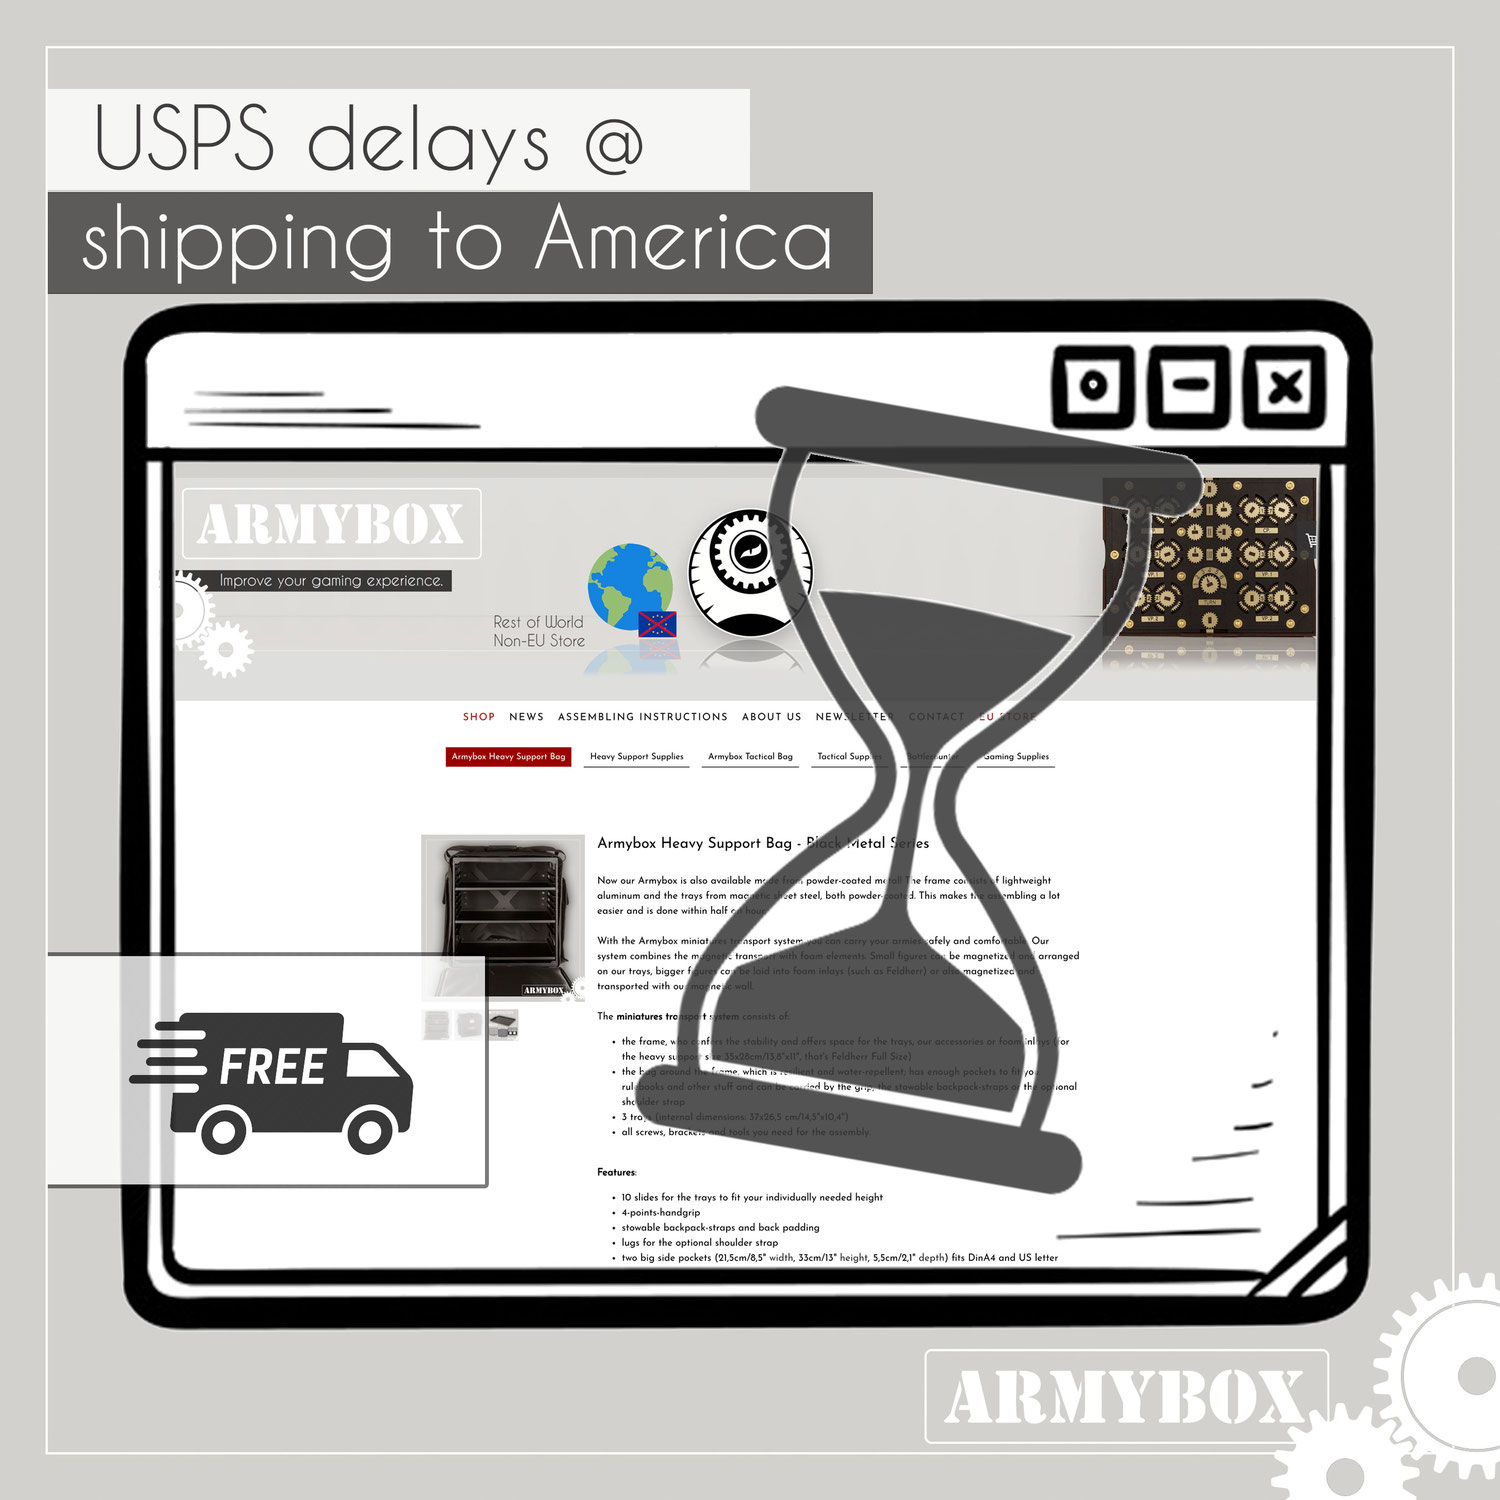 USPS shipping delays